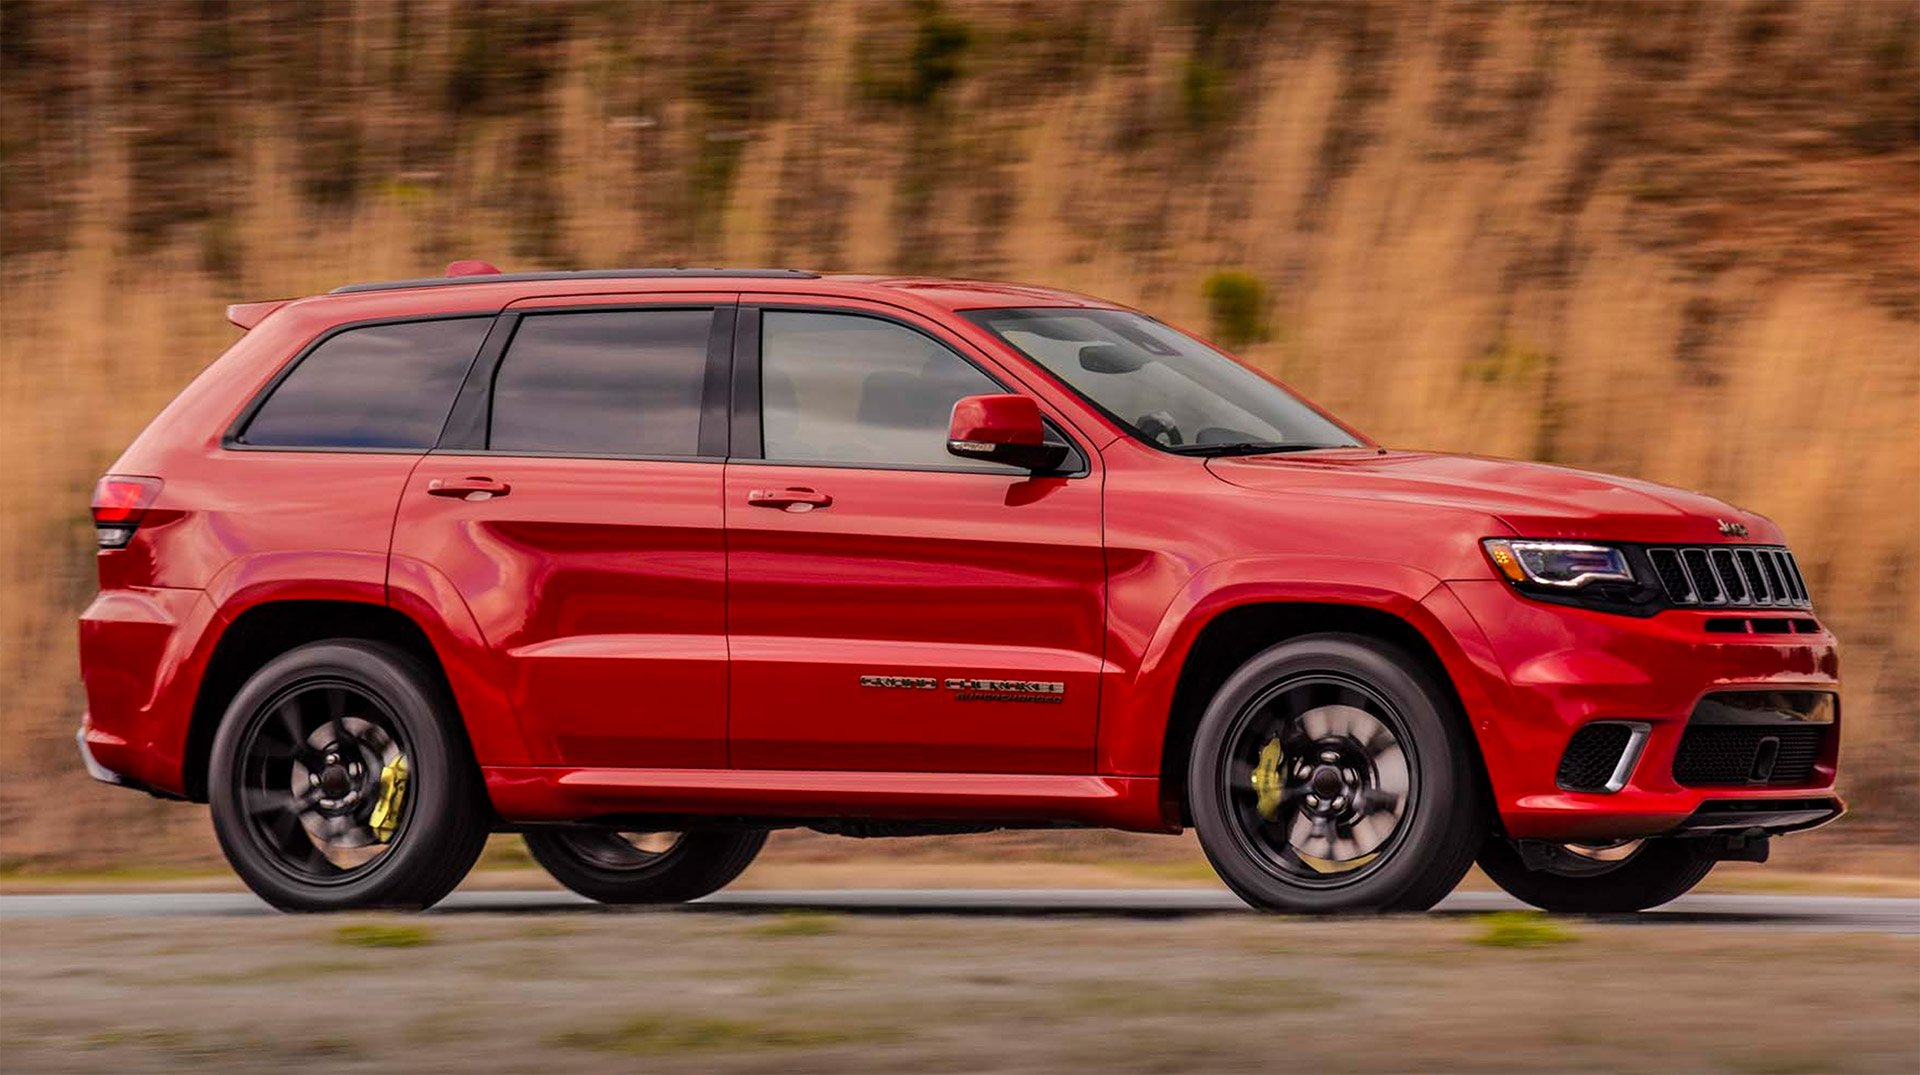 2018 jeep cherokee trackhawk hellcat all the things 95 octane. Black Bedroom Furniture Sets. Home Design Ideas